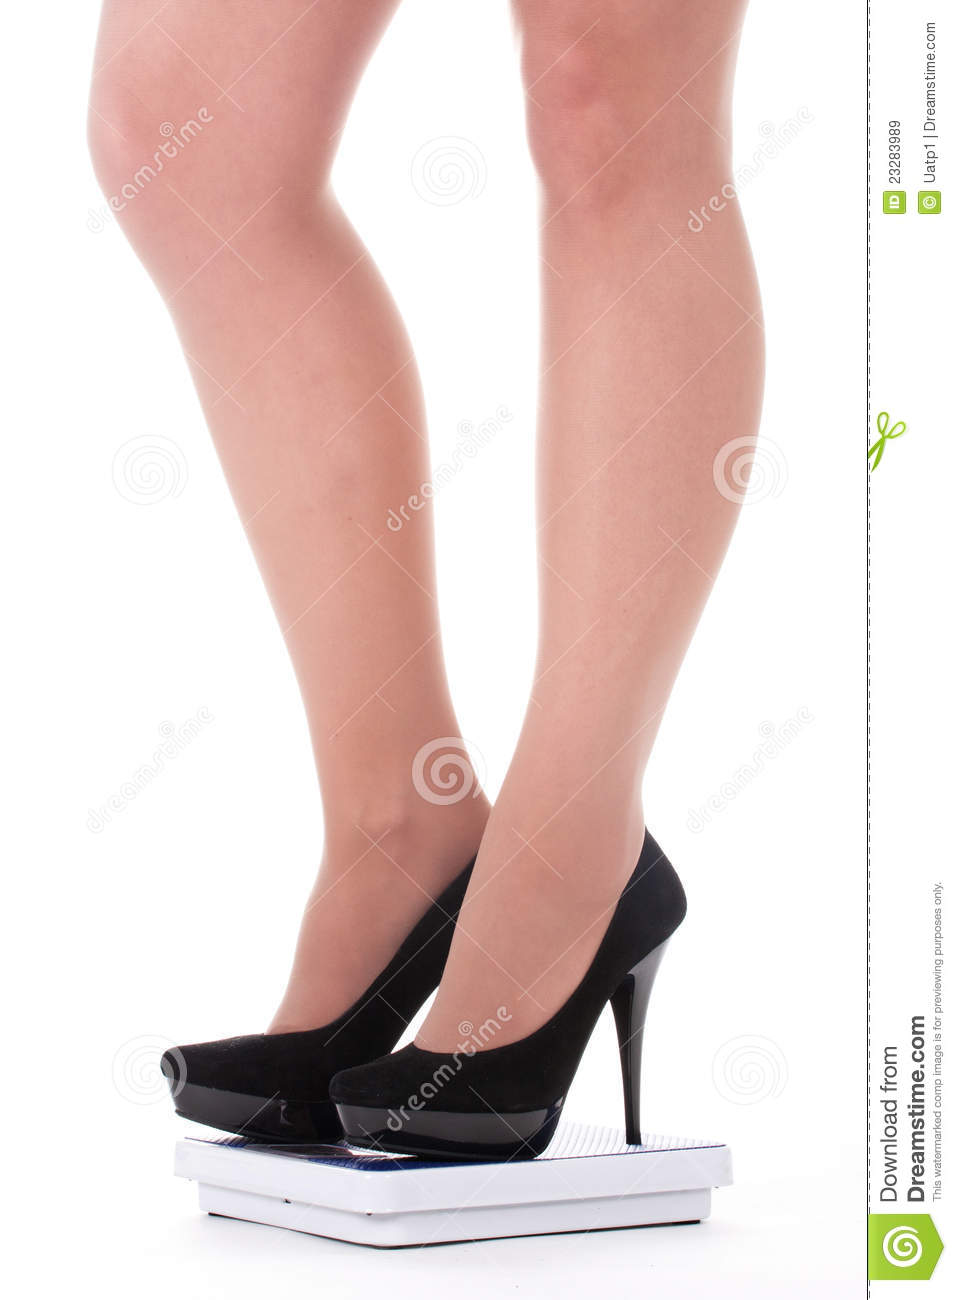 Feet In Shoes On Scale Stock Image Image Of Legs Meter